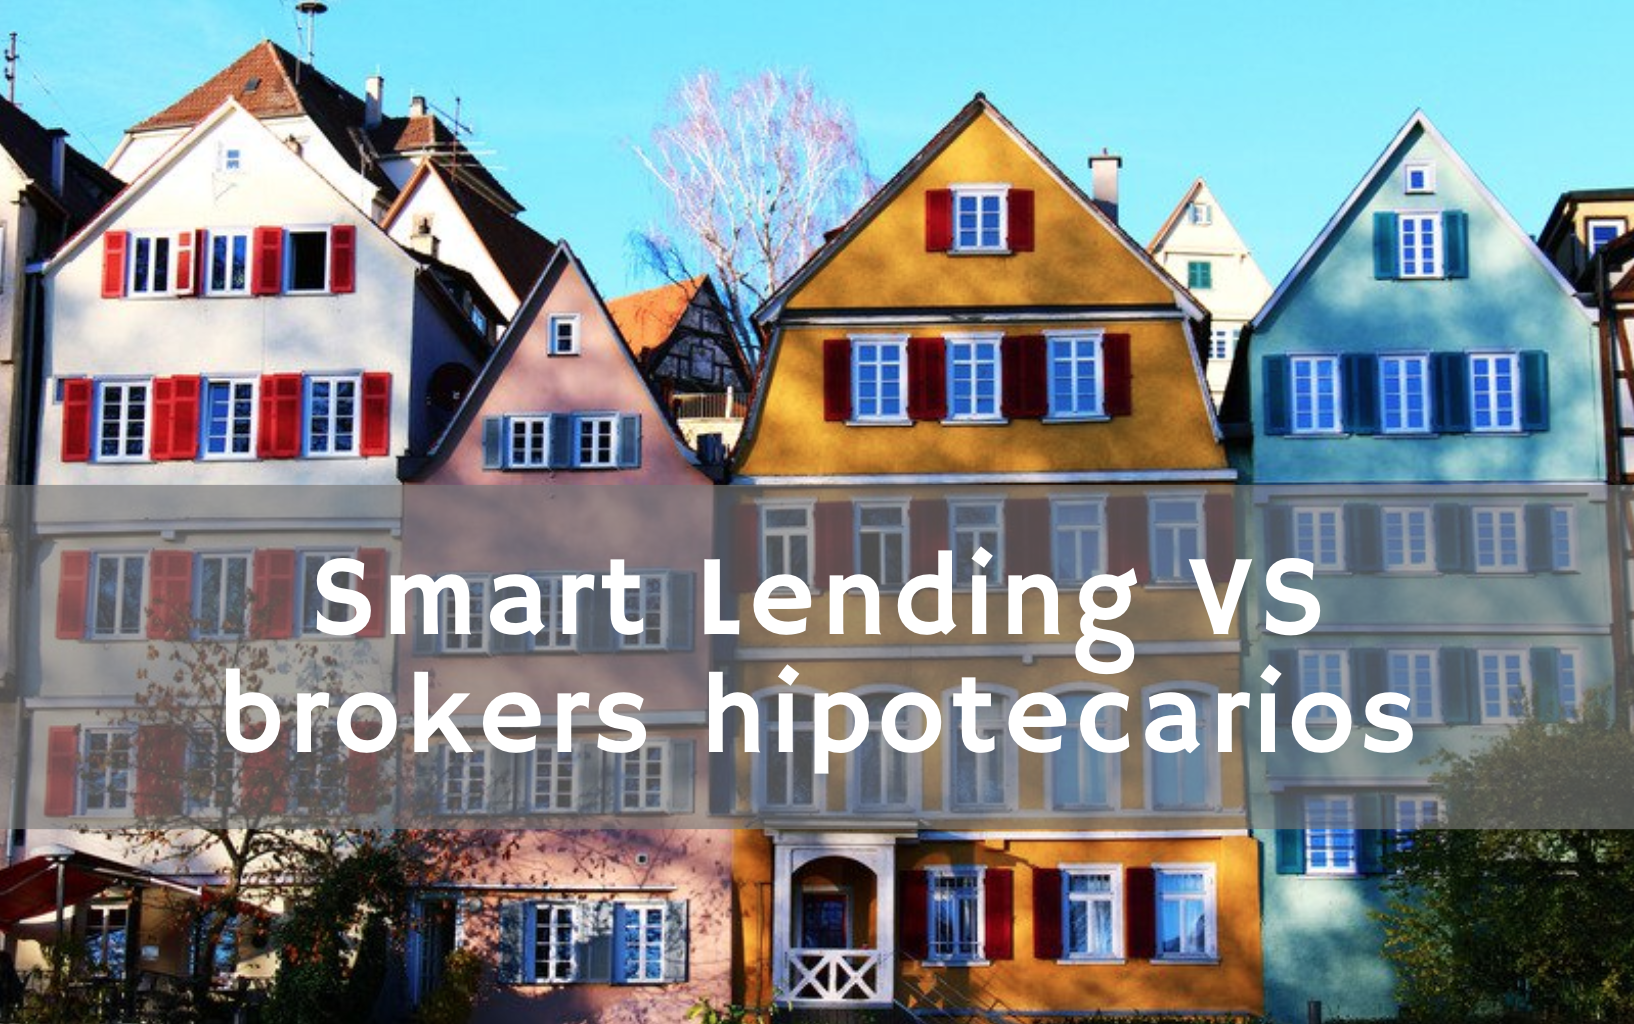 Smart Lending vs Brokers hipotecarios